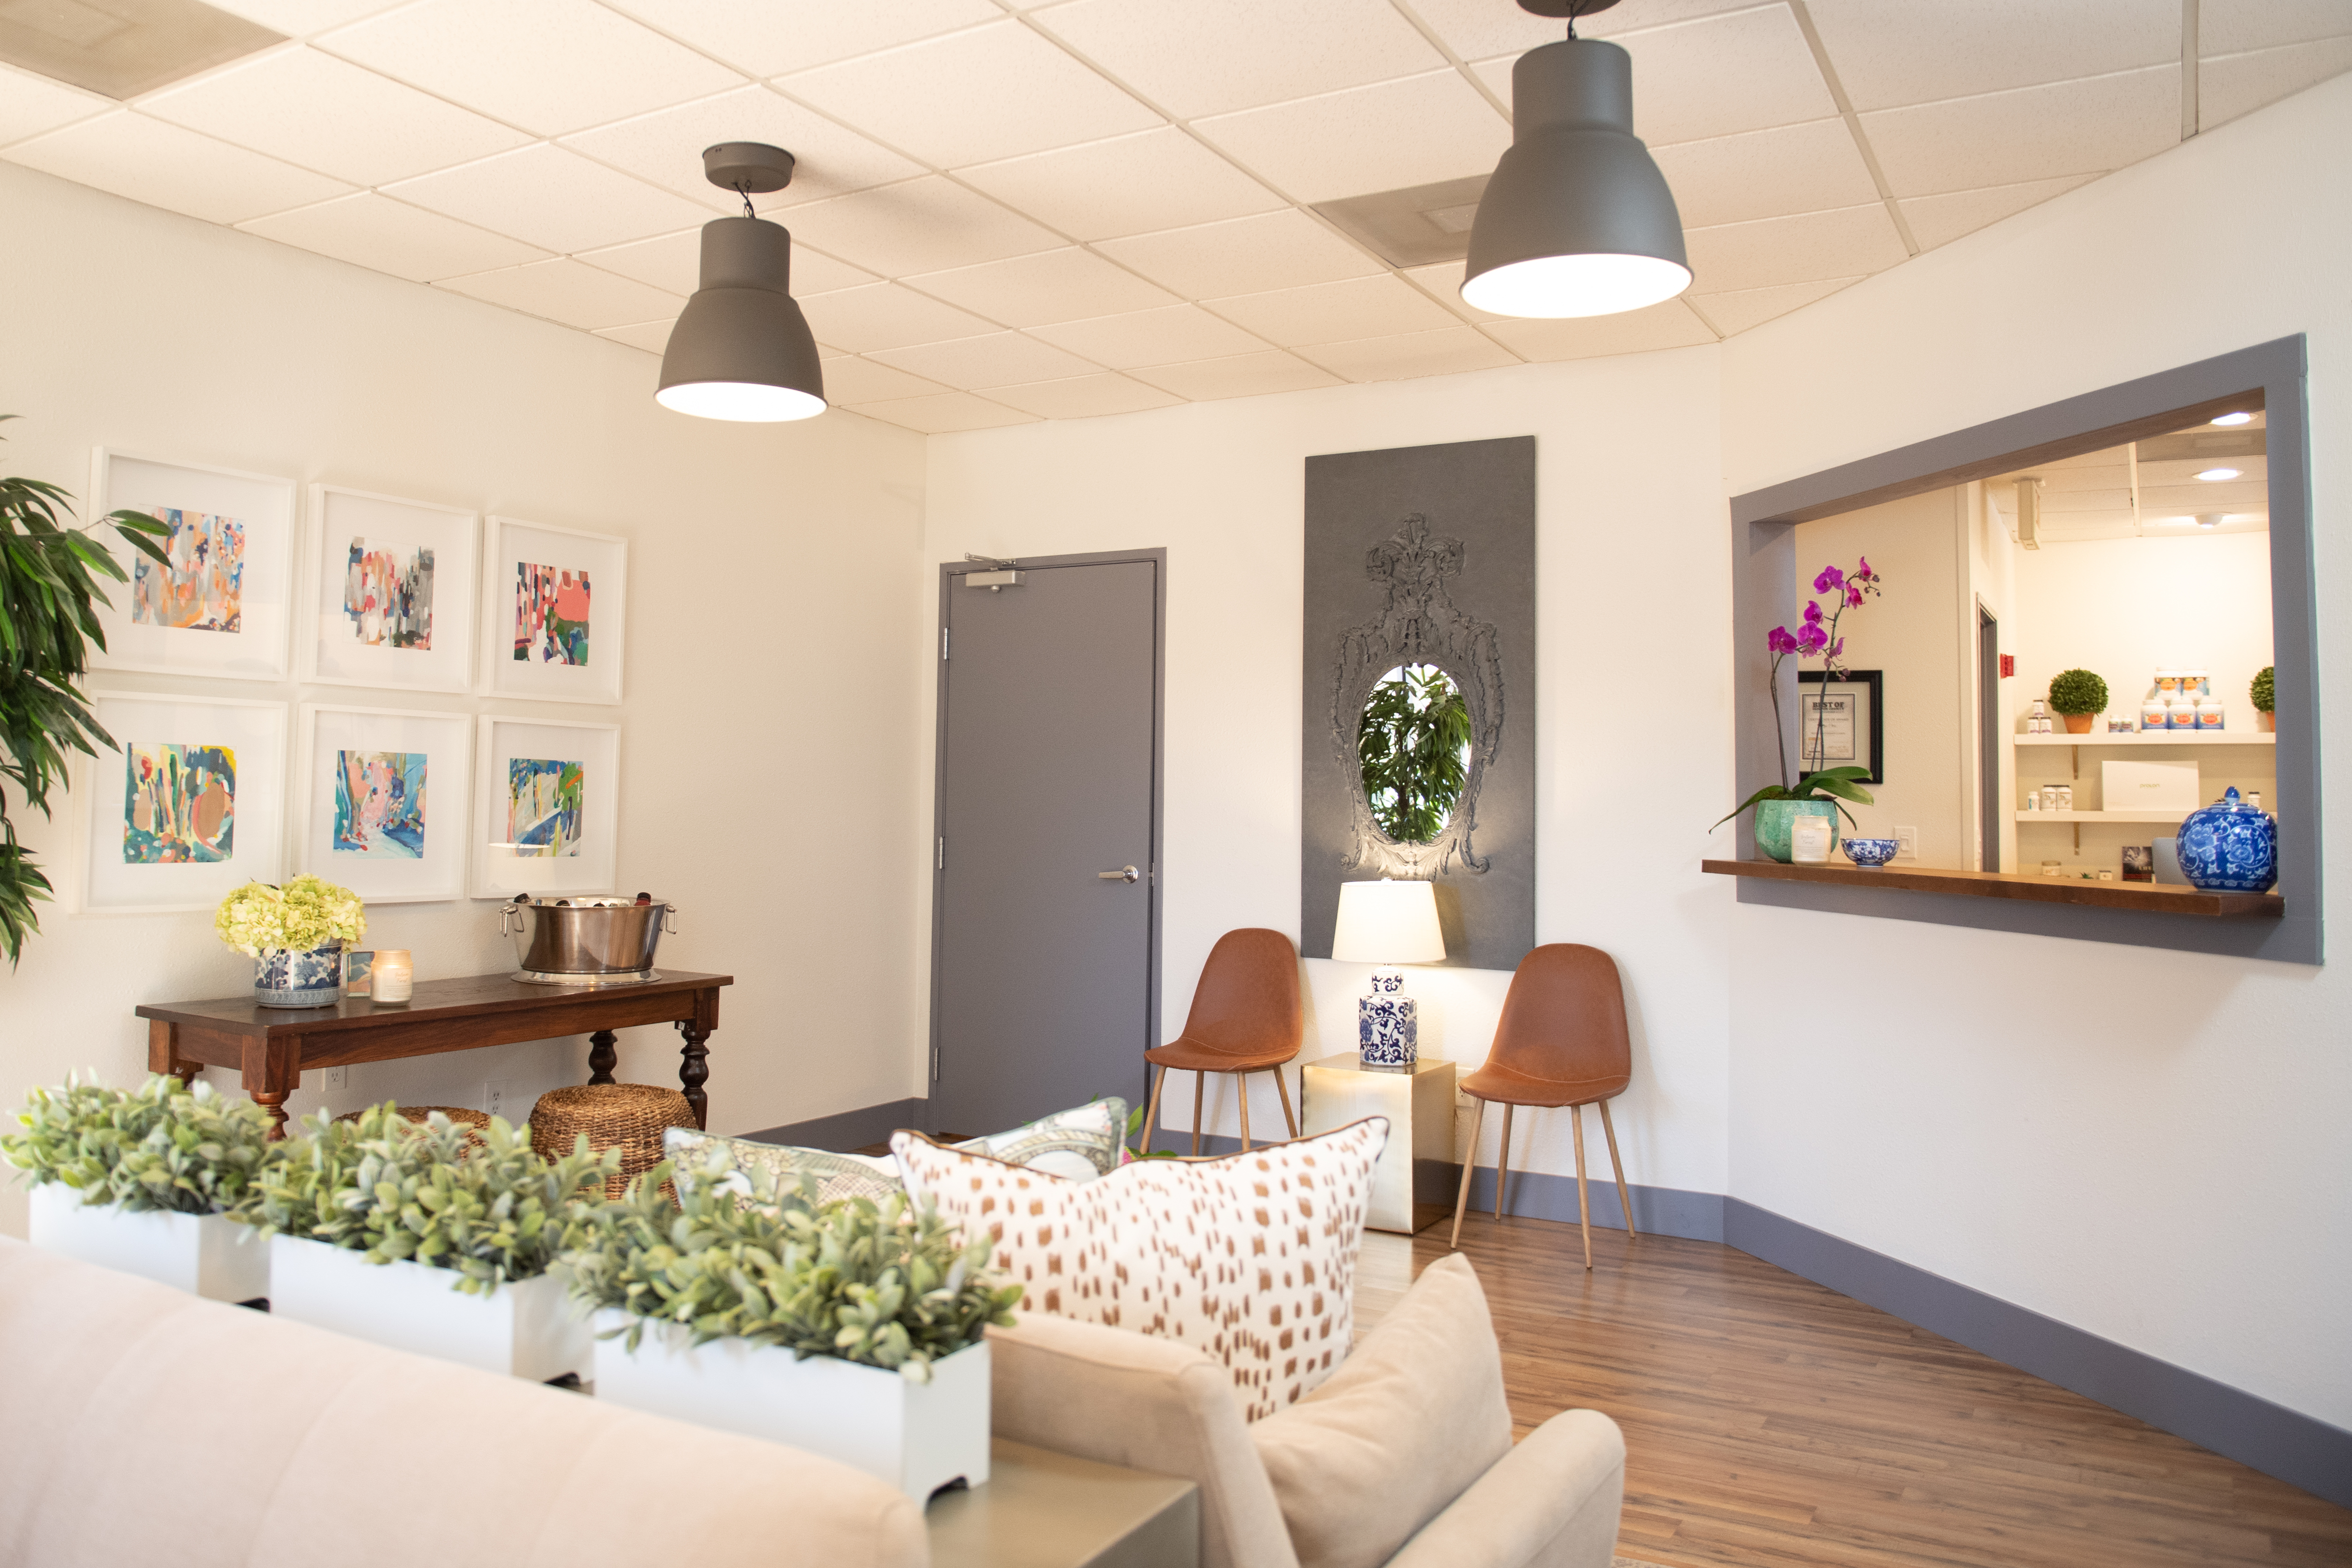 Cryo Clinic - Wellness and Recovery Spa in Flower Mound, TX